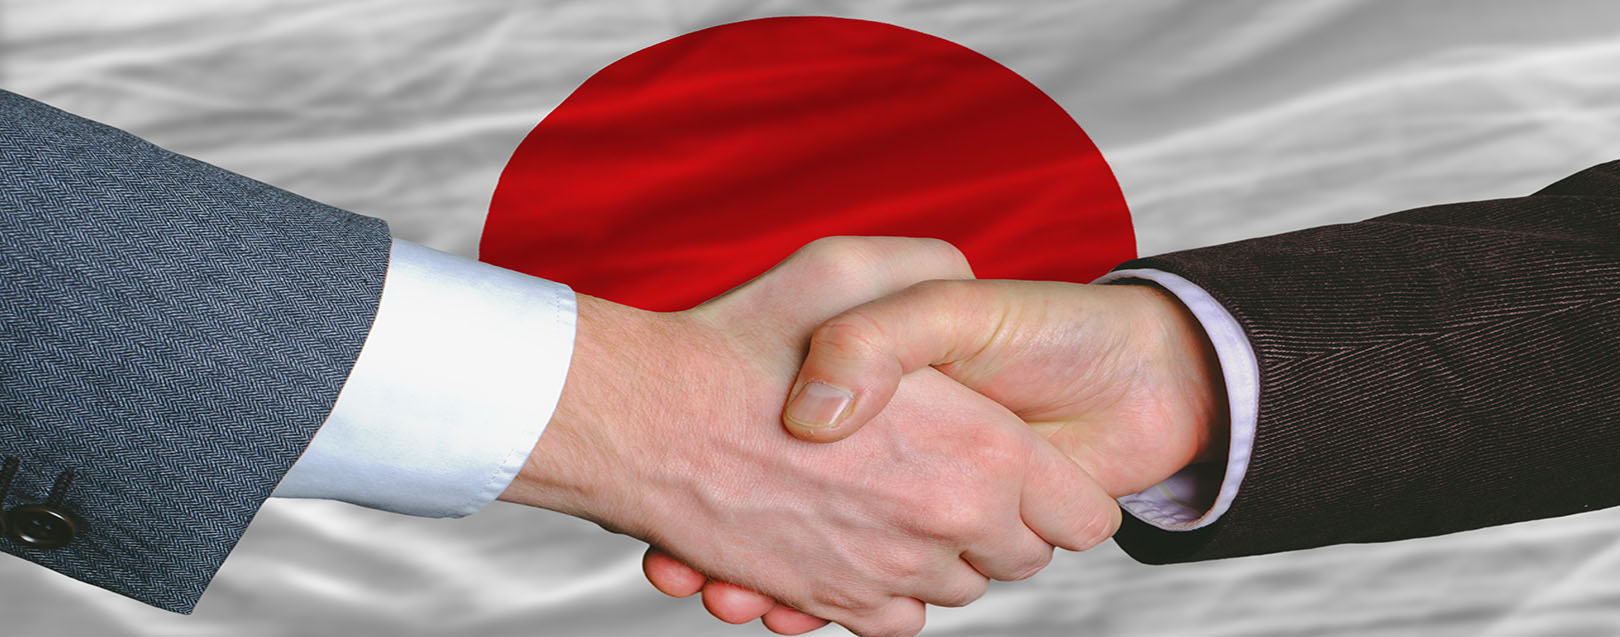 JETRO welcomes more Indian investment in Japan